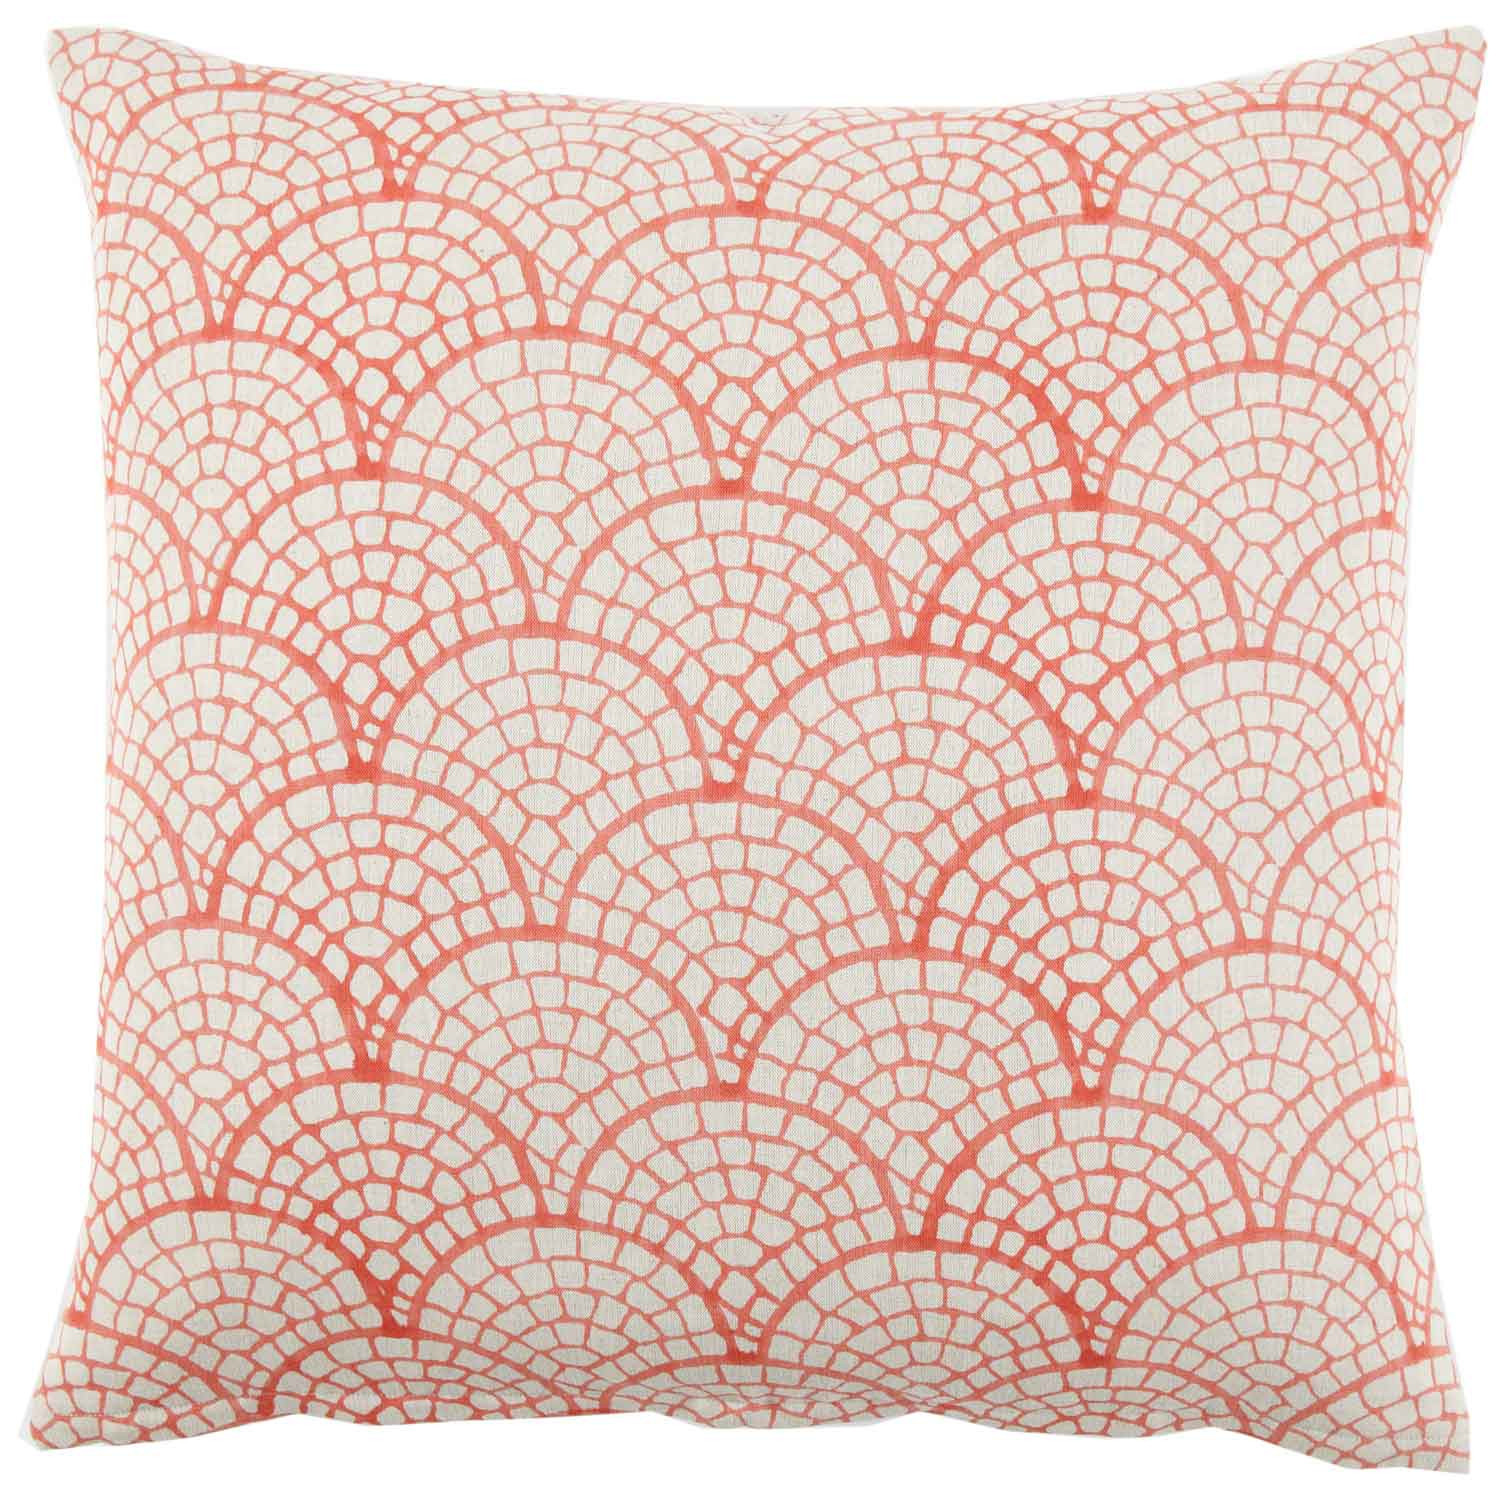 Amusing John Robshaw Pillows for Living Room Accessories Ideas: John Robshaw Quilt Sale | John Robshaw Pillows | John Robshaw Sale